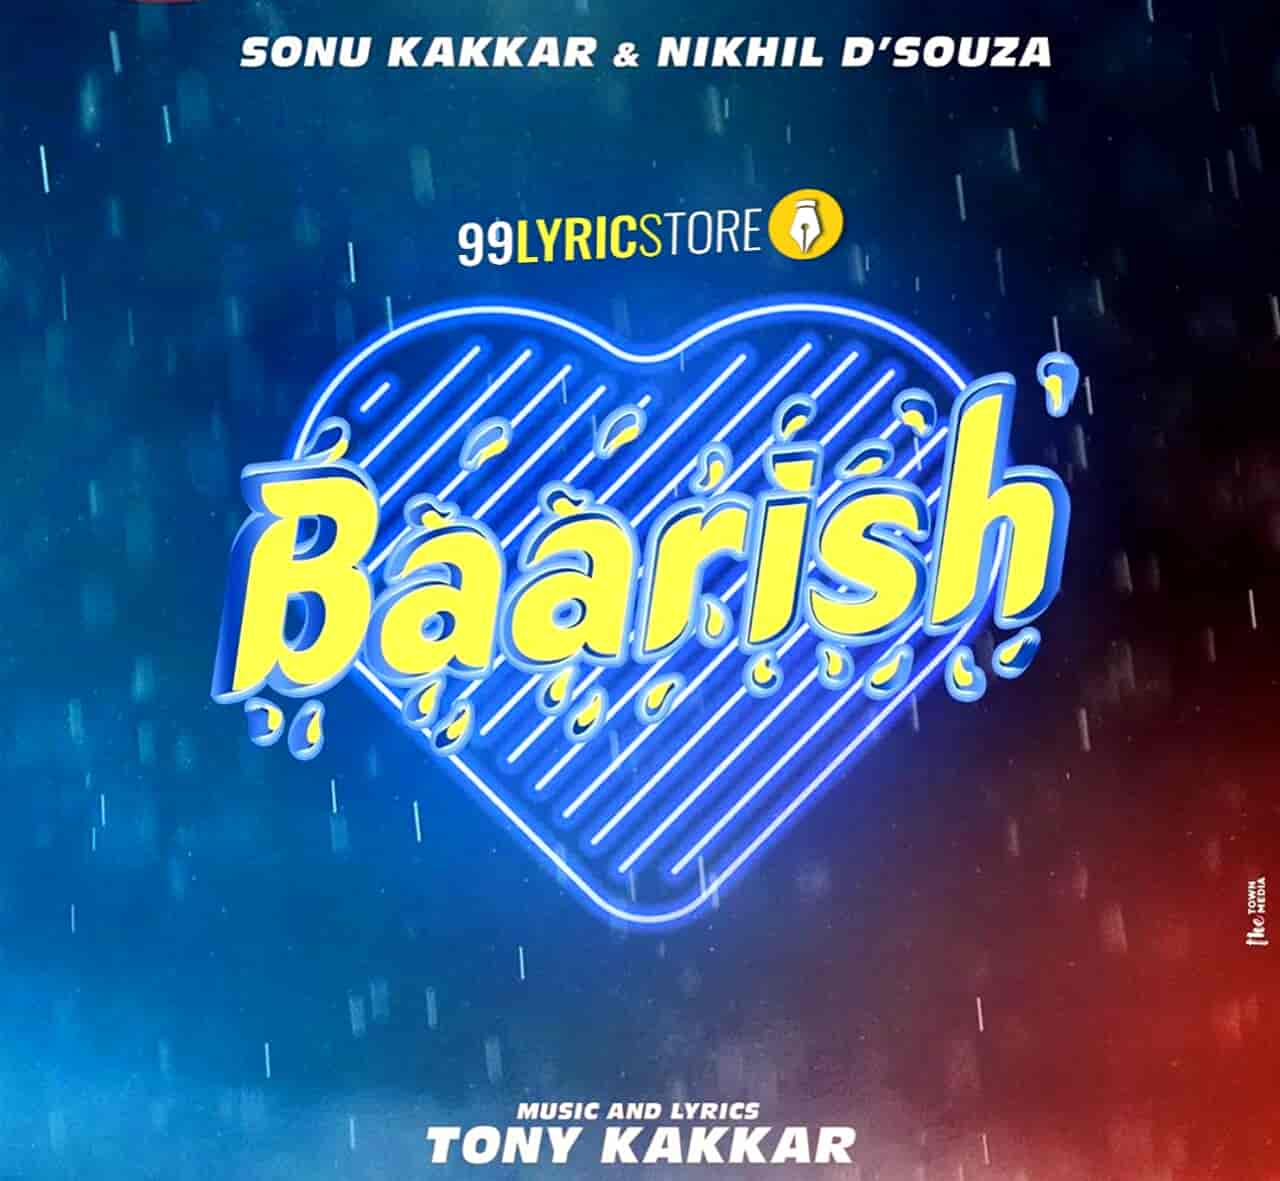 Baarish Lyrics Images By Nikhil D'Souza & Sonu Kakkar